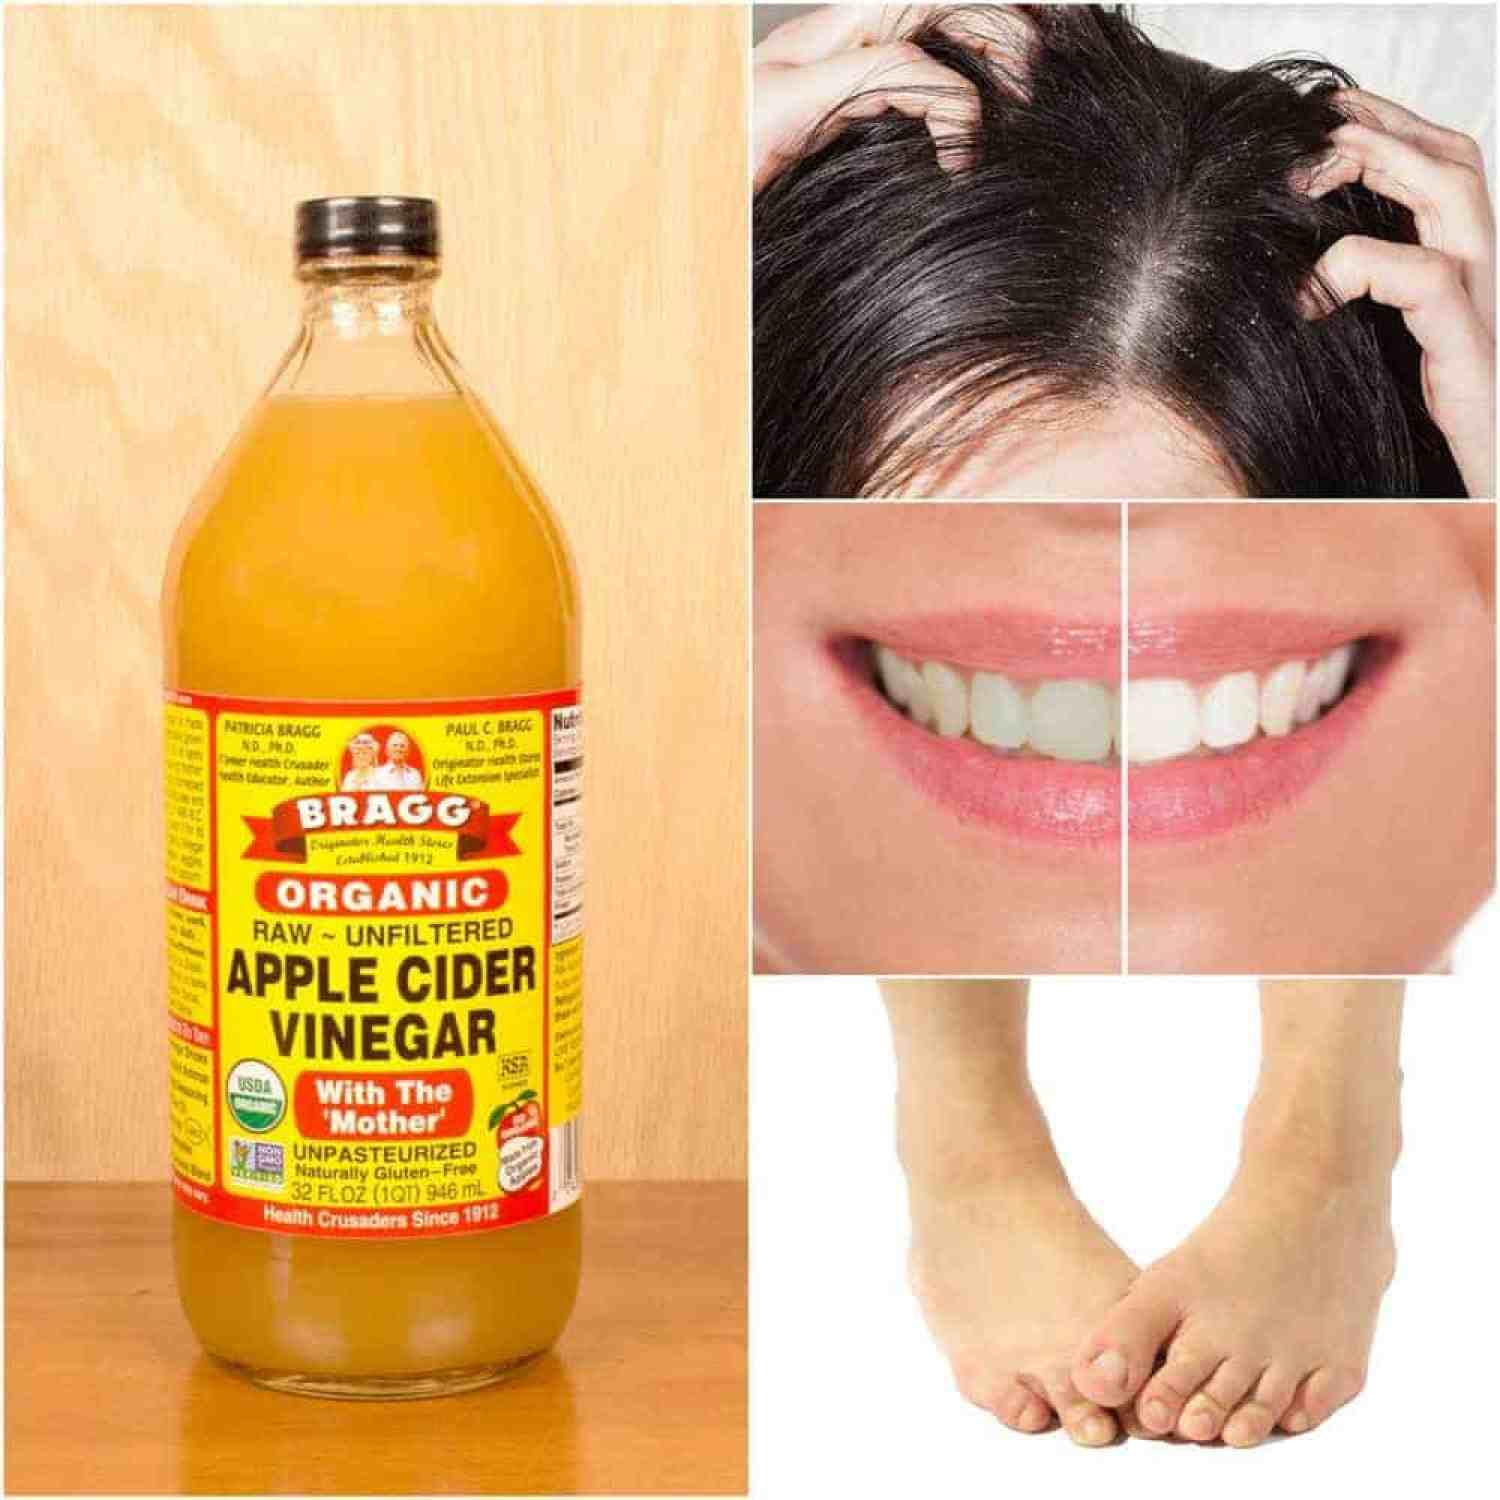 Apple Cider Vinegar to Make Your Life Easier